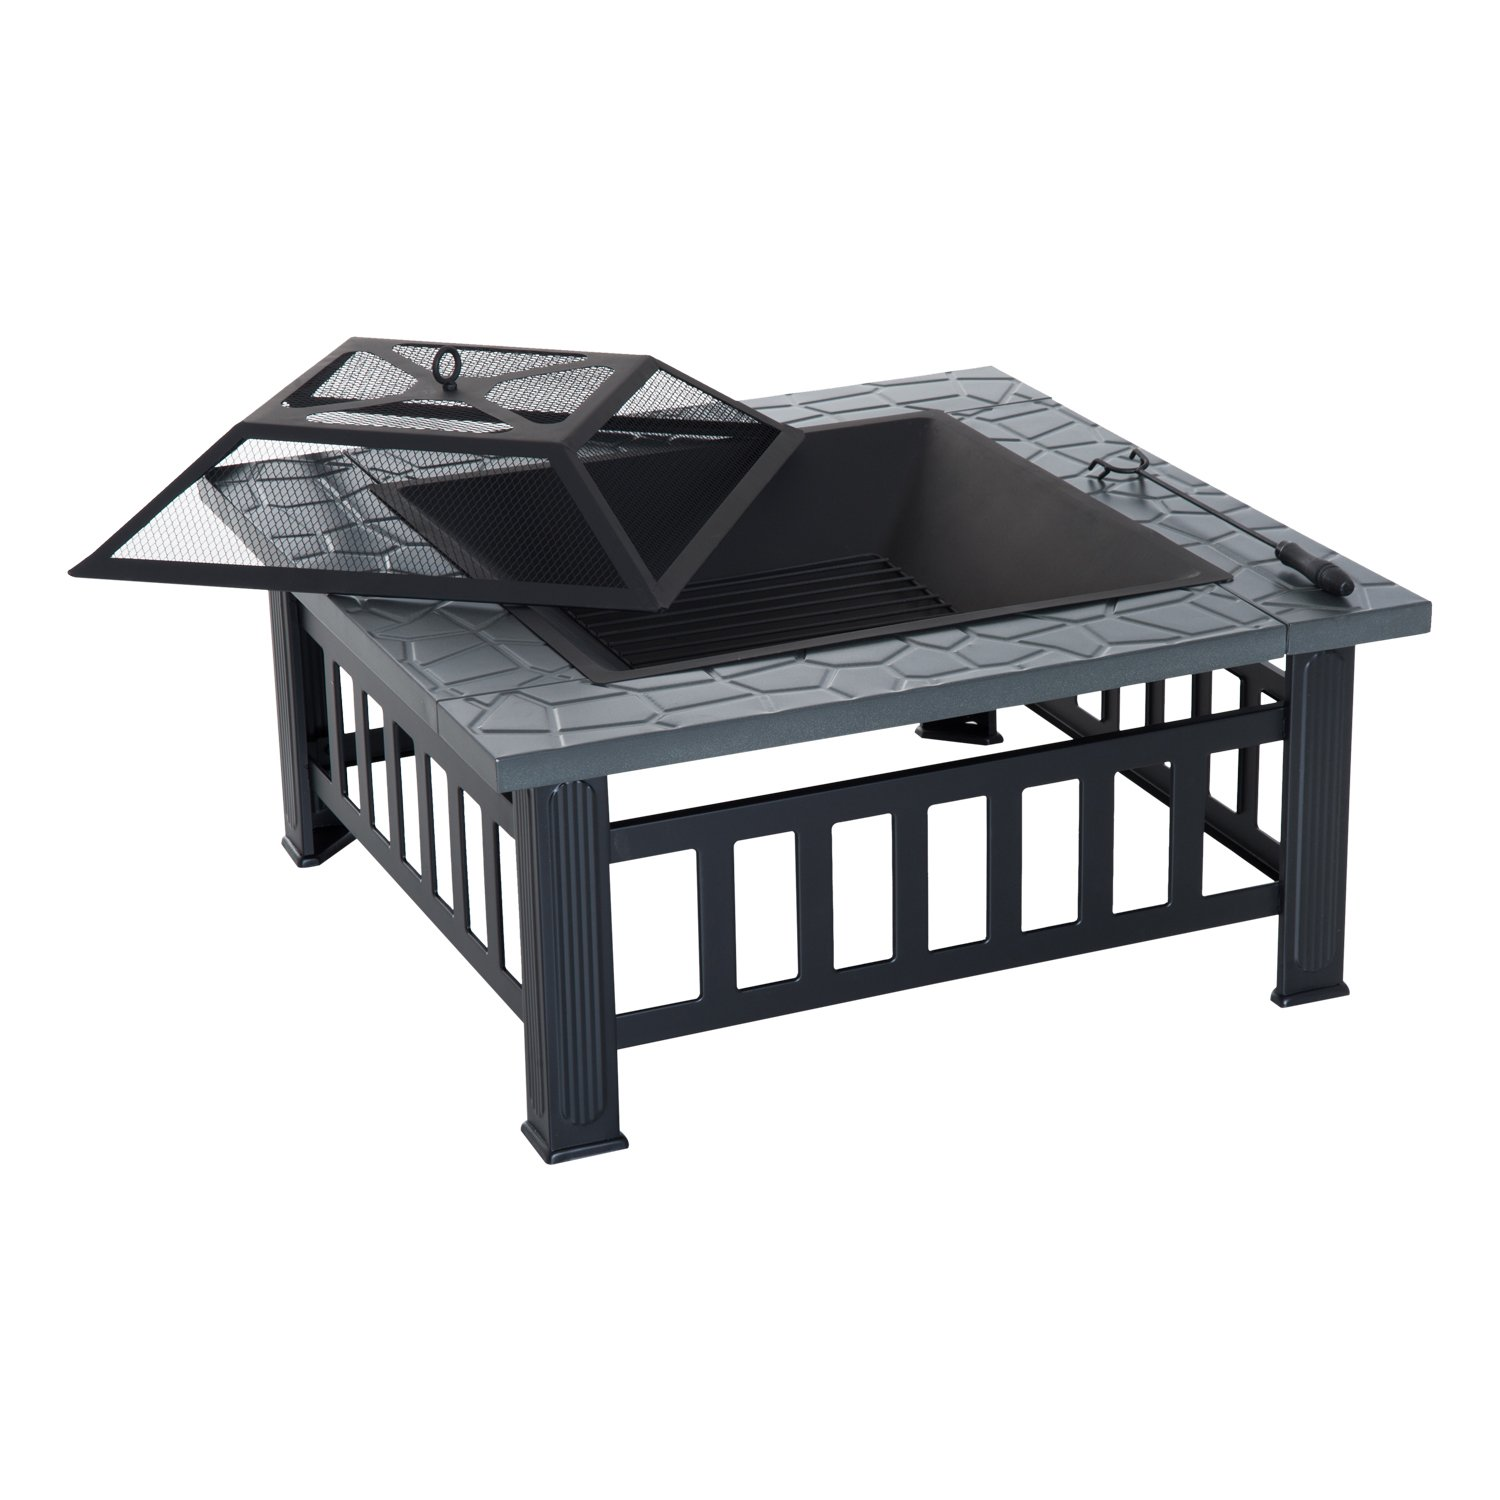 Outsunny 32'' Steel Square Outdoor Patio Wood Burning Fire Pit Table Top Set by Outsunny